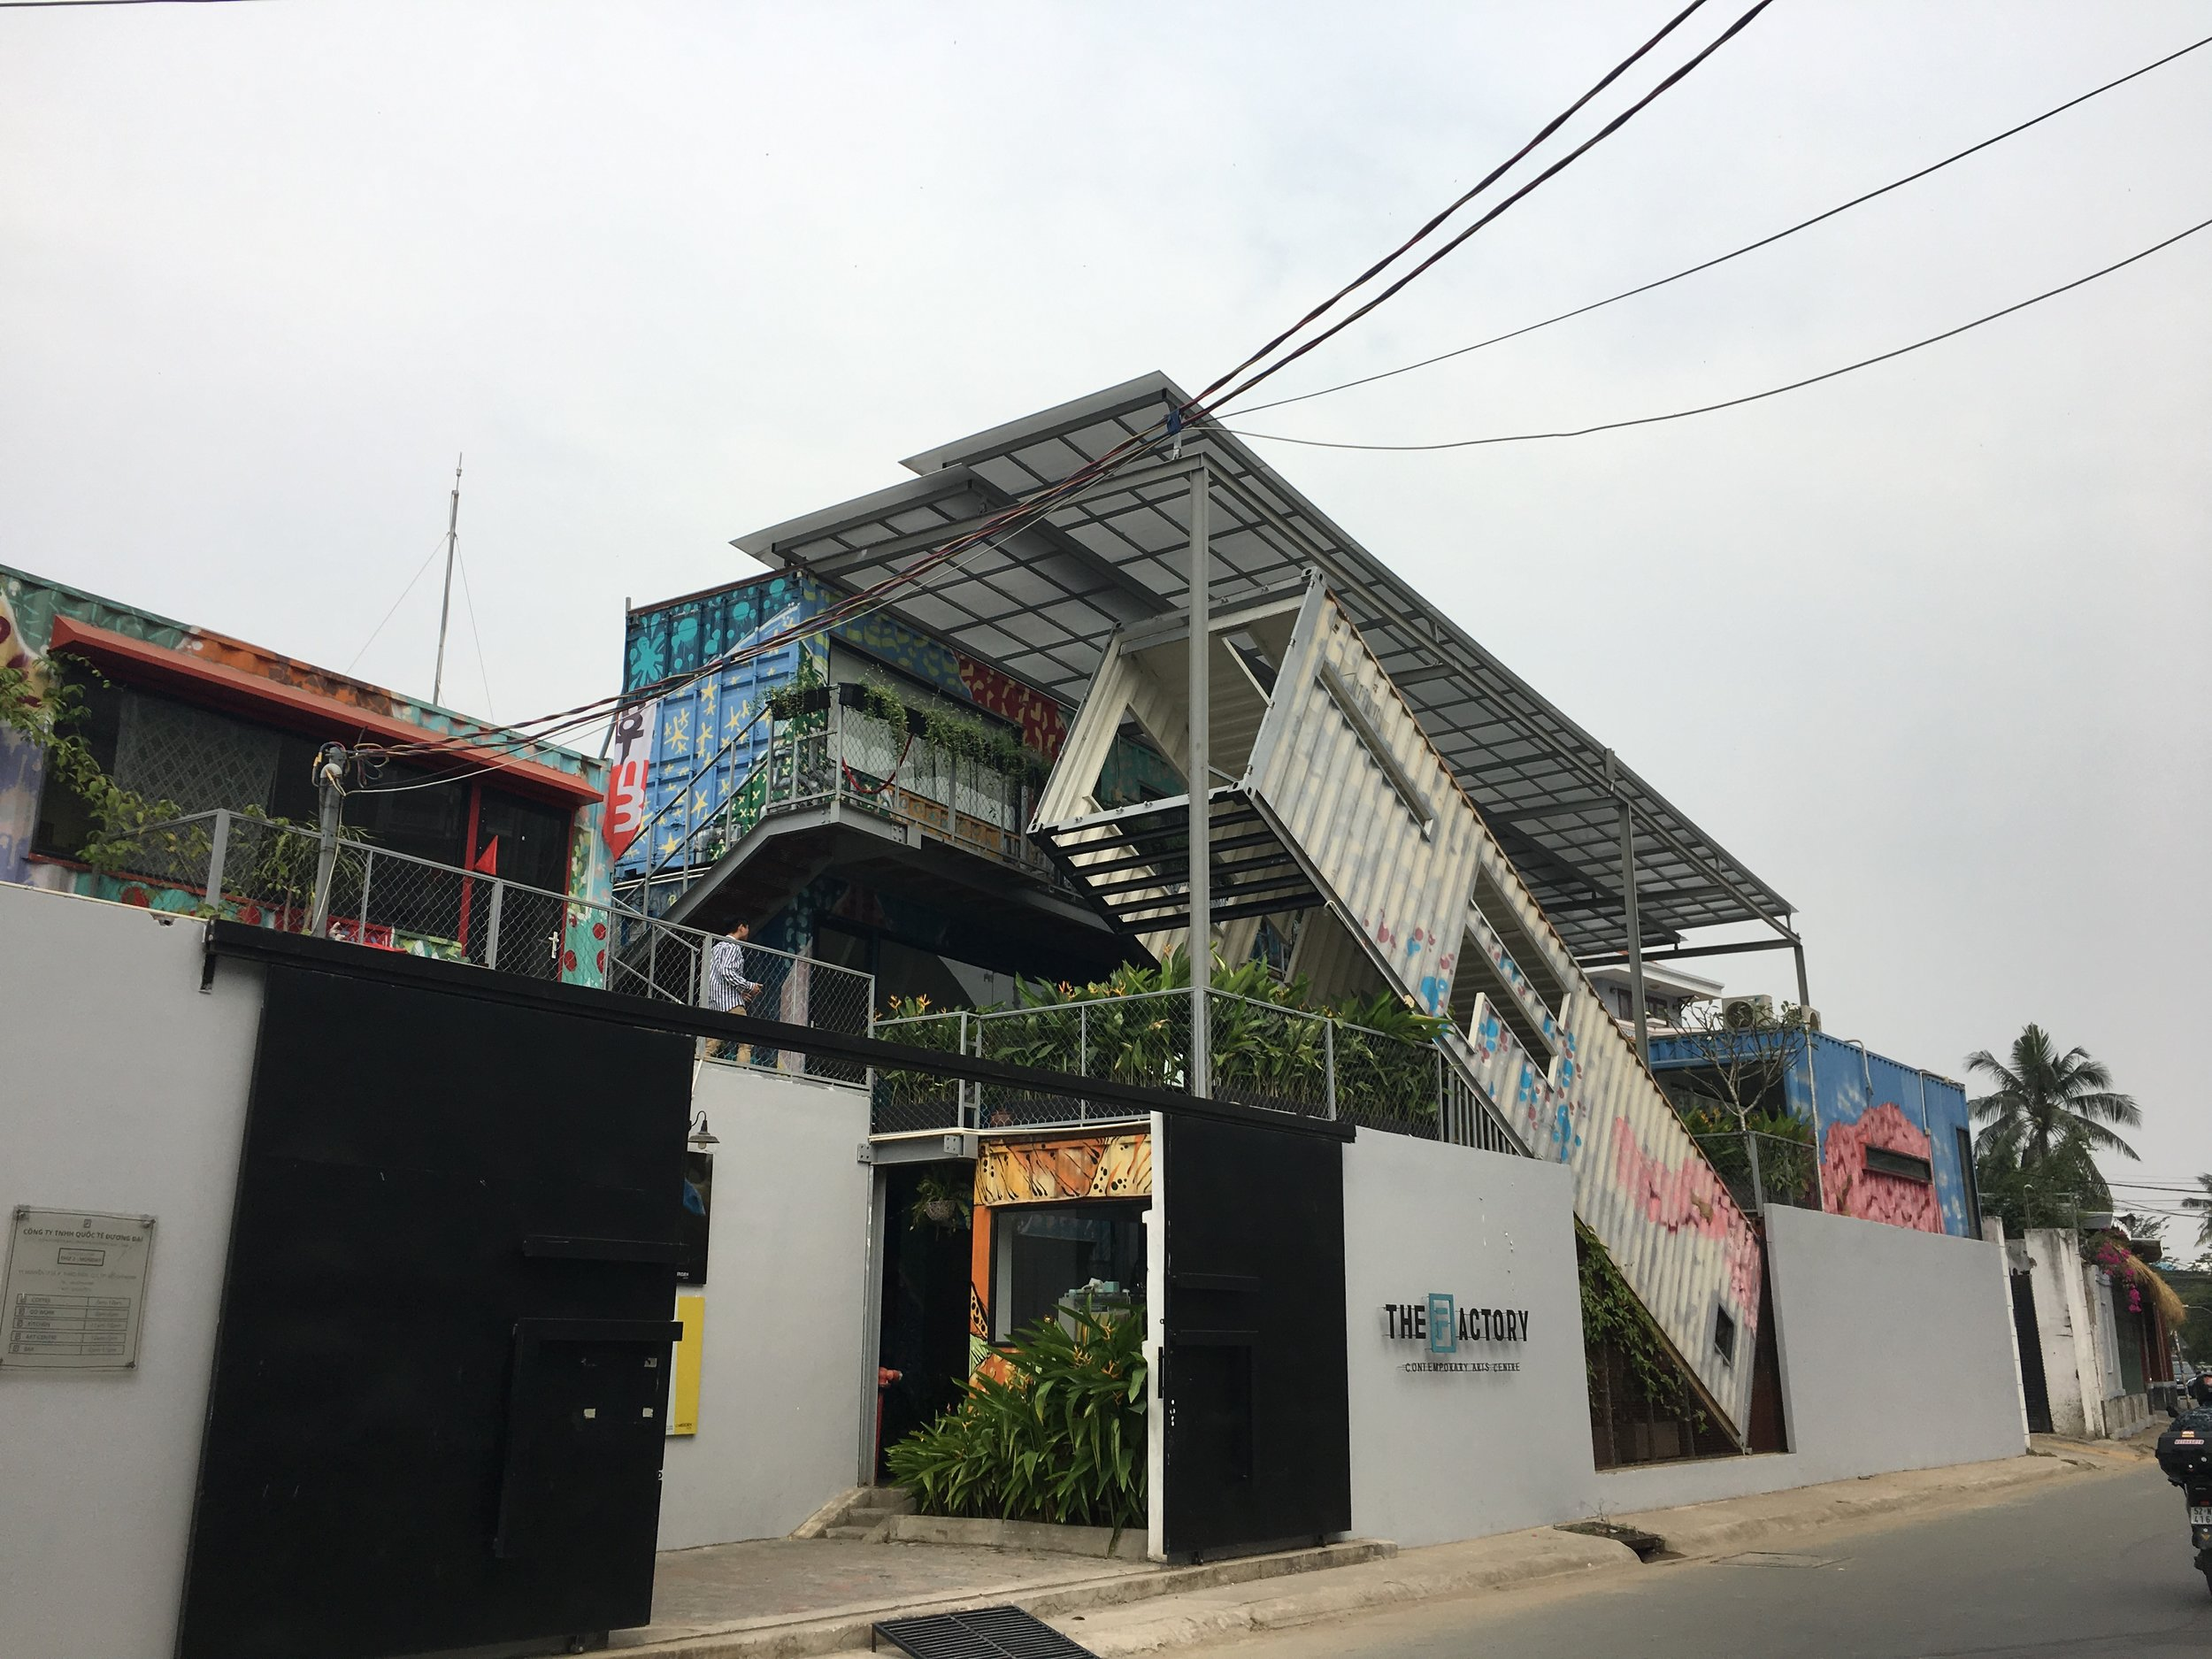 """The Factory aims to be a dynamic destination for art, designing innovative programs illustrating the criticality of Vietnam today.""  www.factoryartscentre.com"